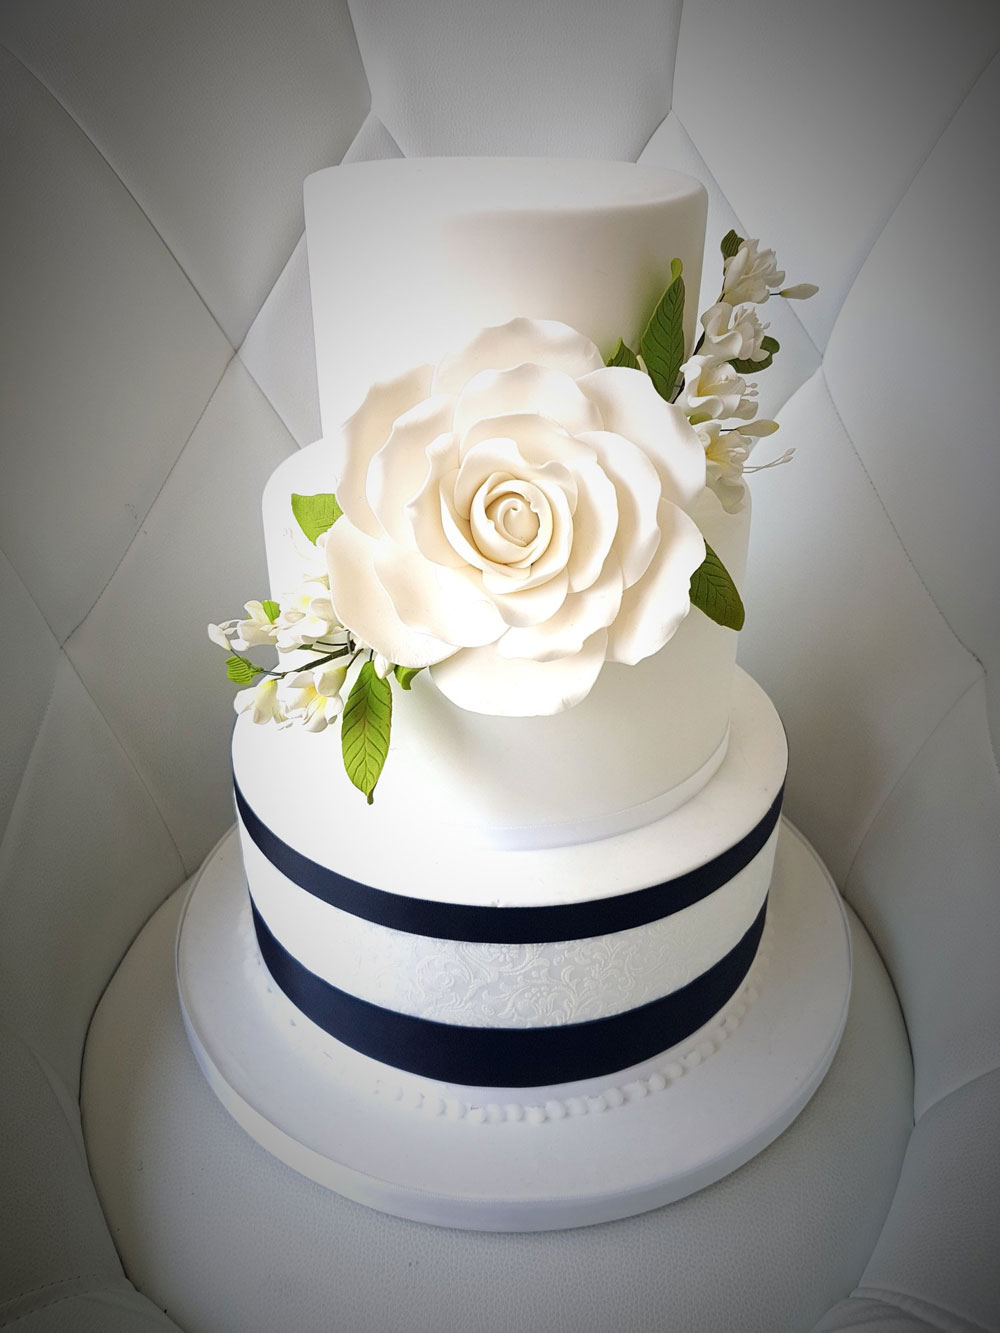 wedding cakes plymouth devon celebrations cakes by wedding cakes plymouth 25291